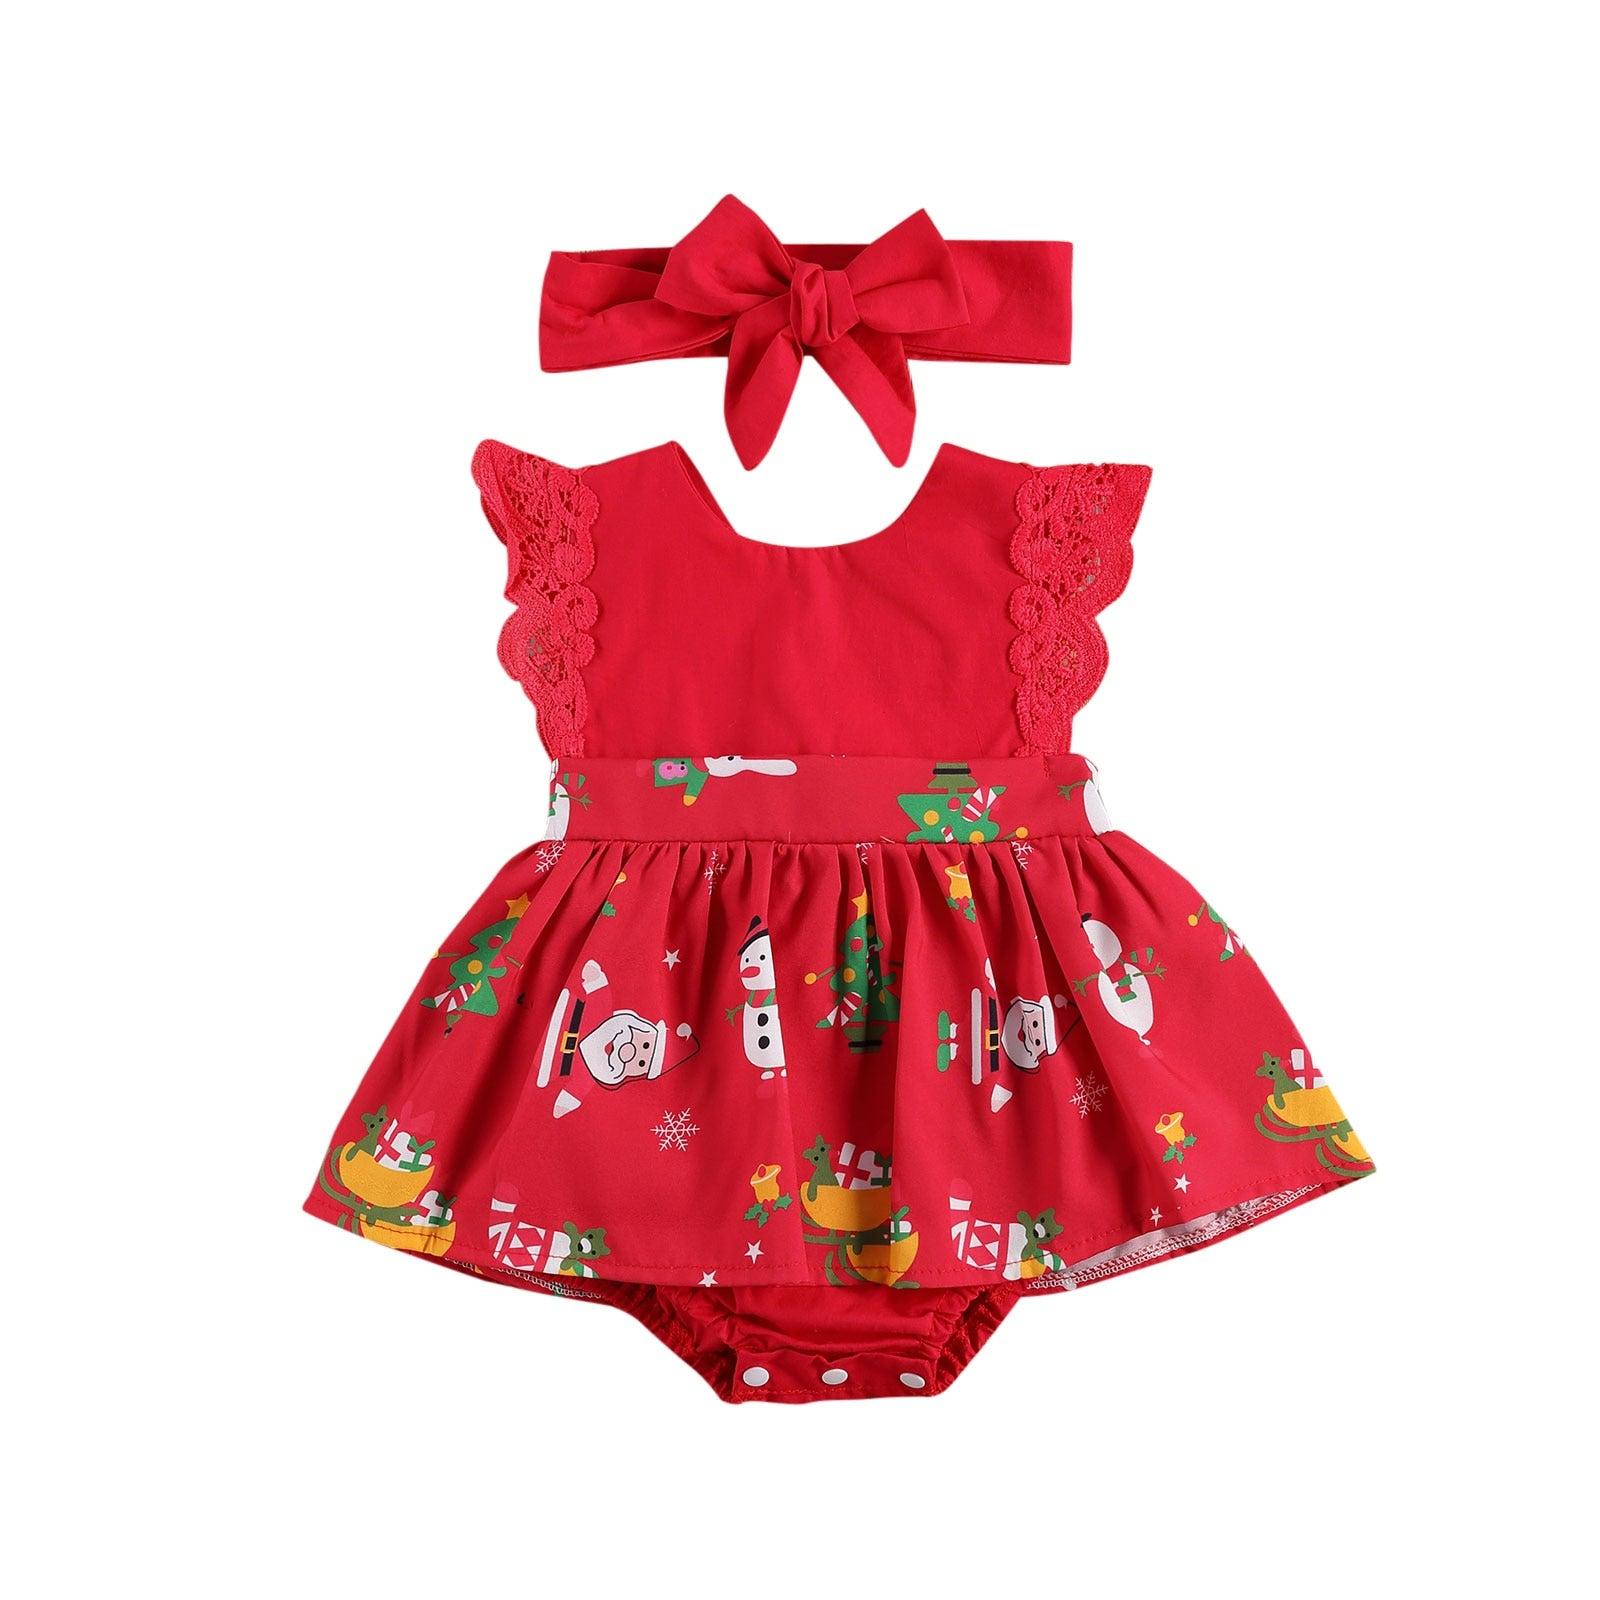 0-24m Christmas Infant Baby Girls Santa Print Striped Sleeveless Lace Patchwork Tutu Romper